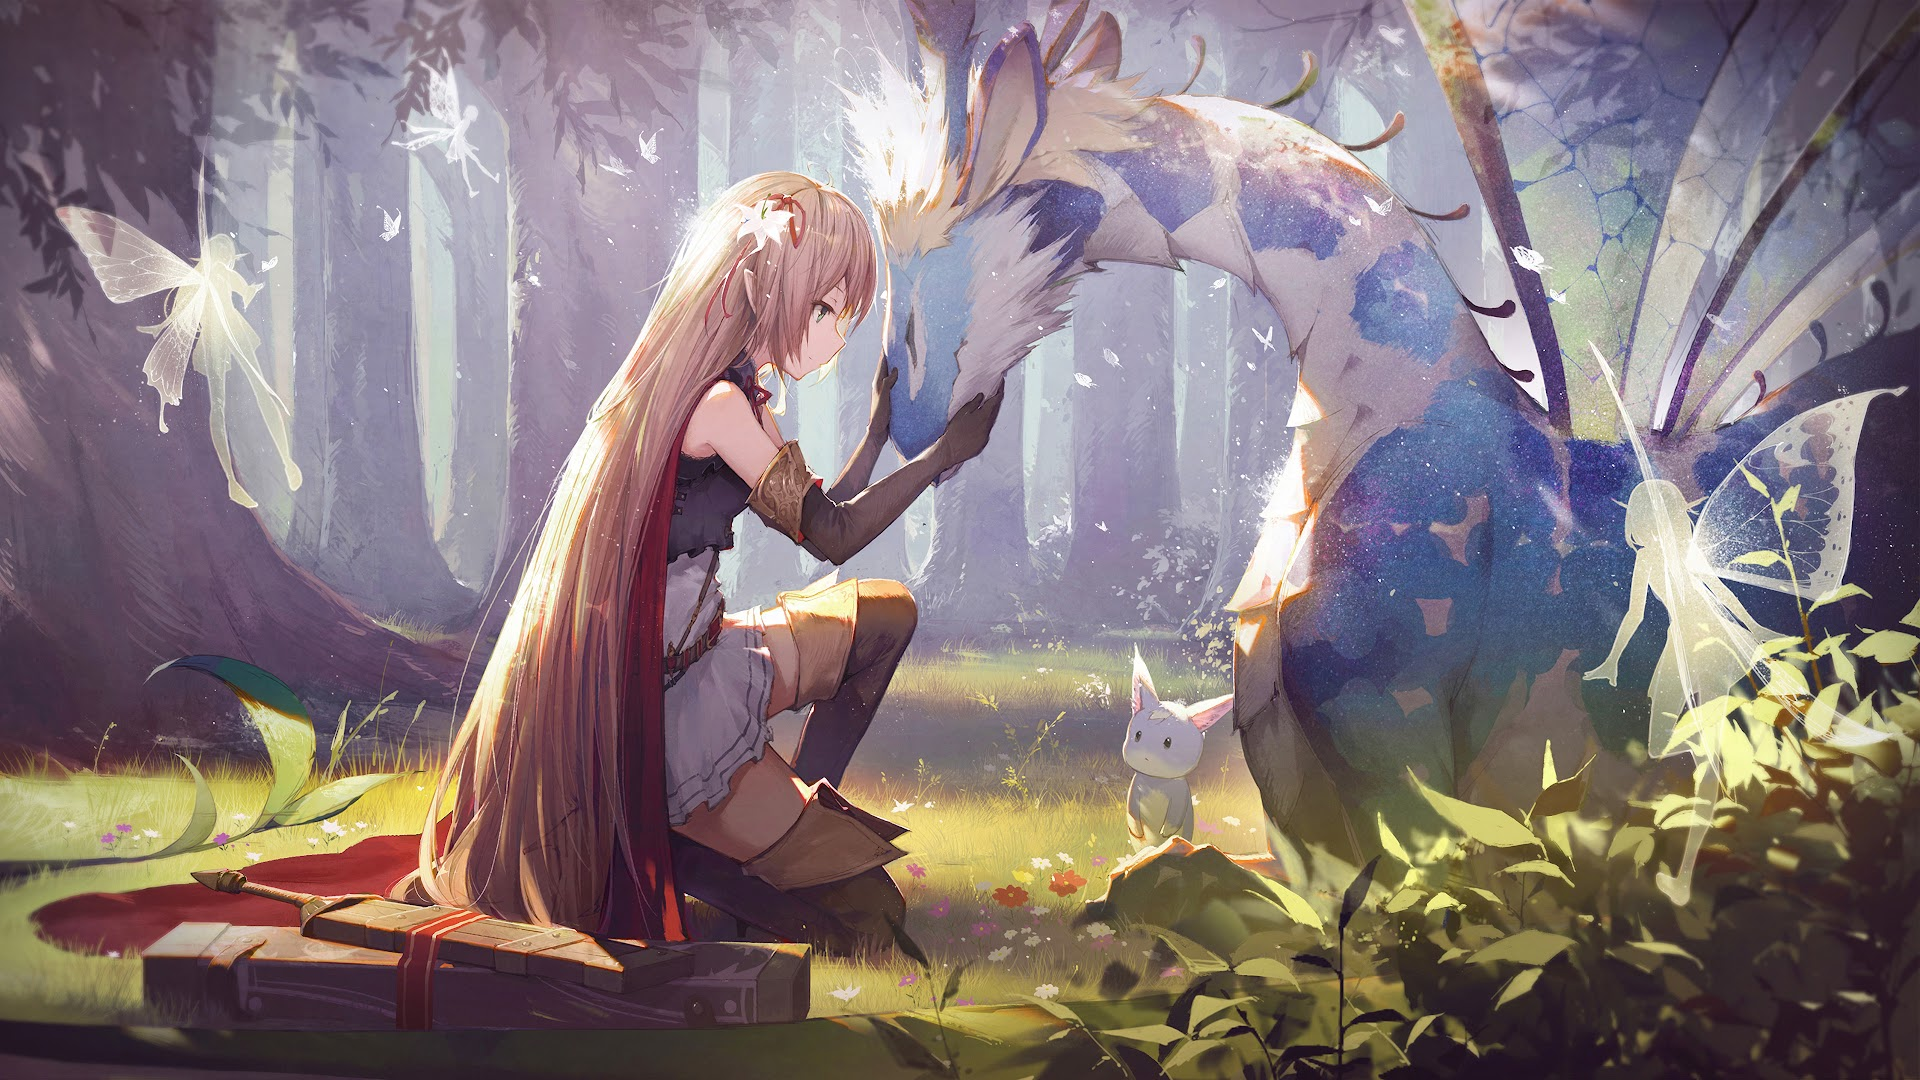 Anime Girl Fantasy Creatures 4k Wallpaper 73